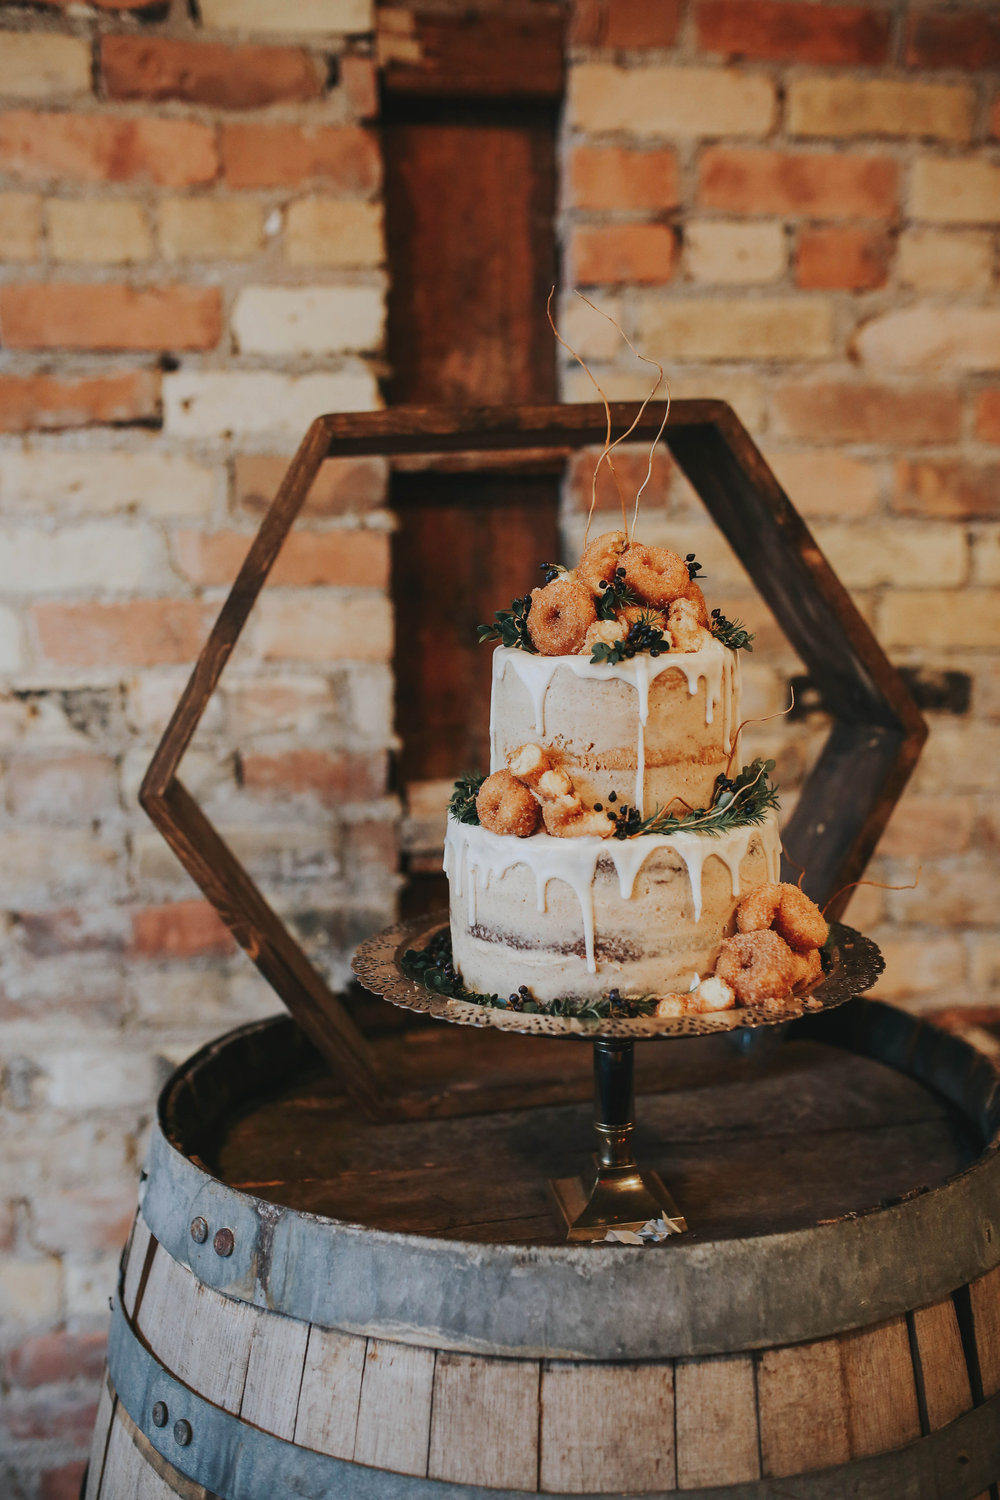 $40.00 we have a collection of primitive and 1950's style whiskey barrels of all sizes. $20.00 Vintage cake stands